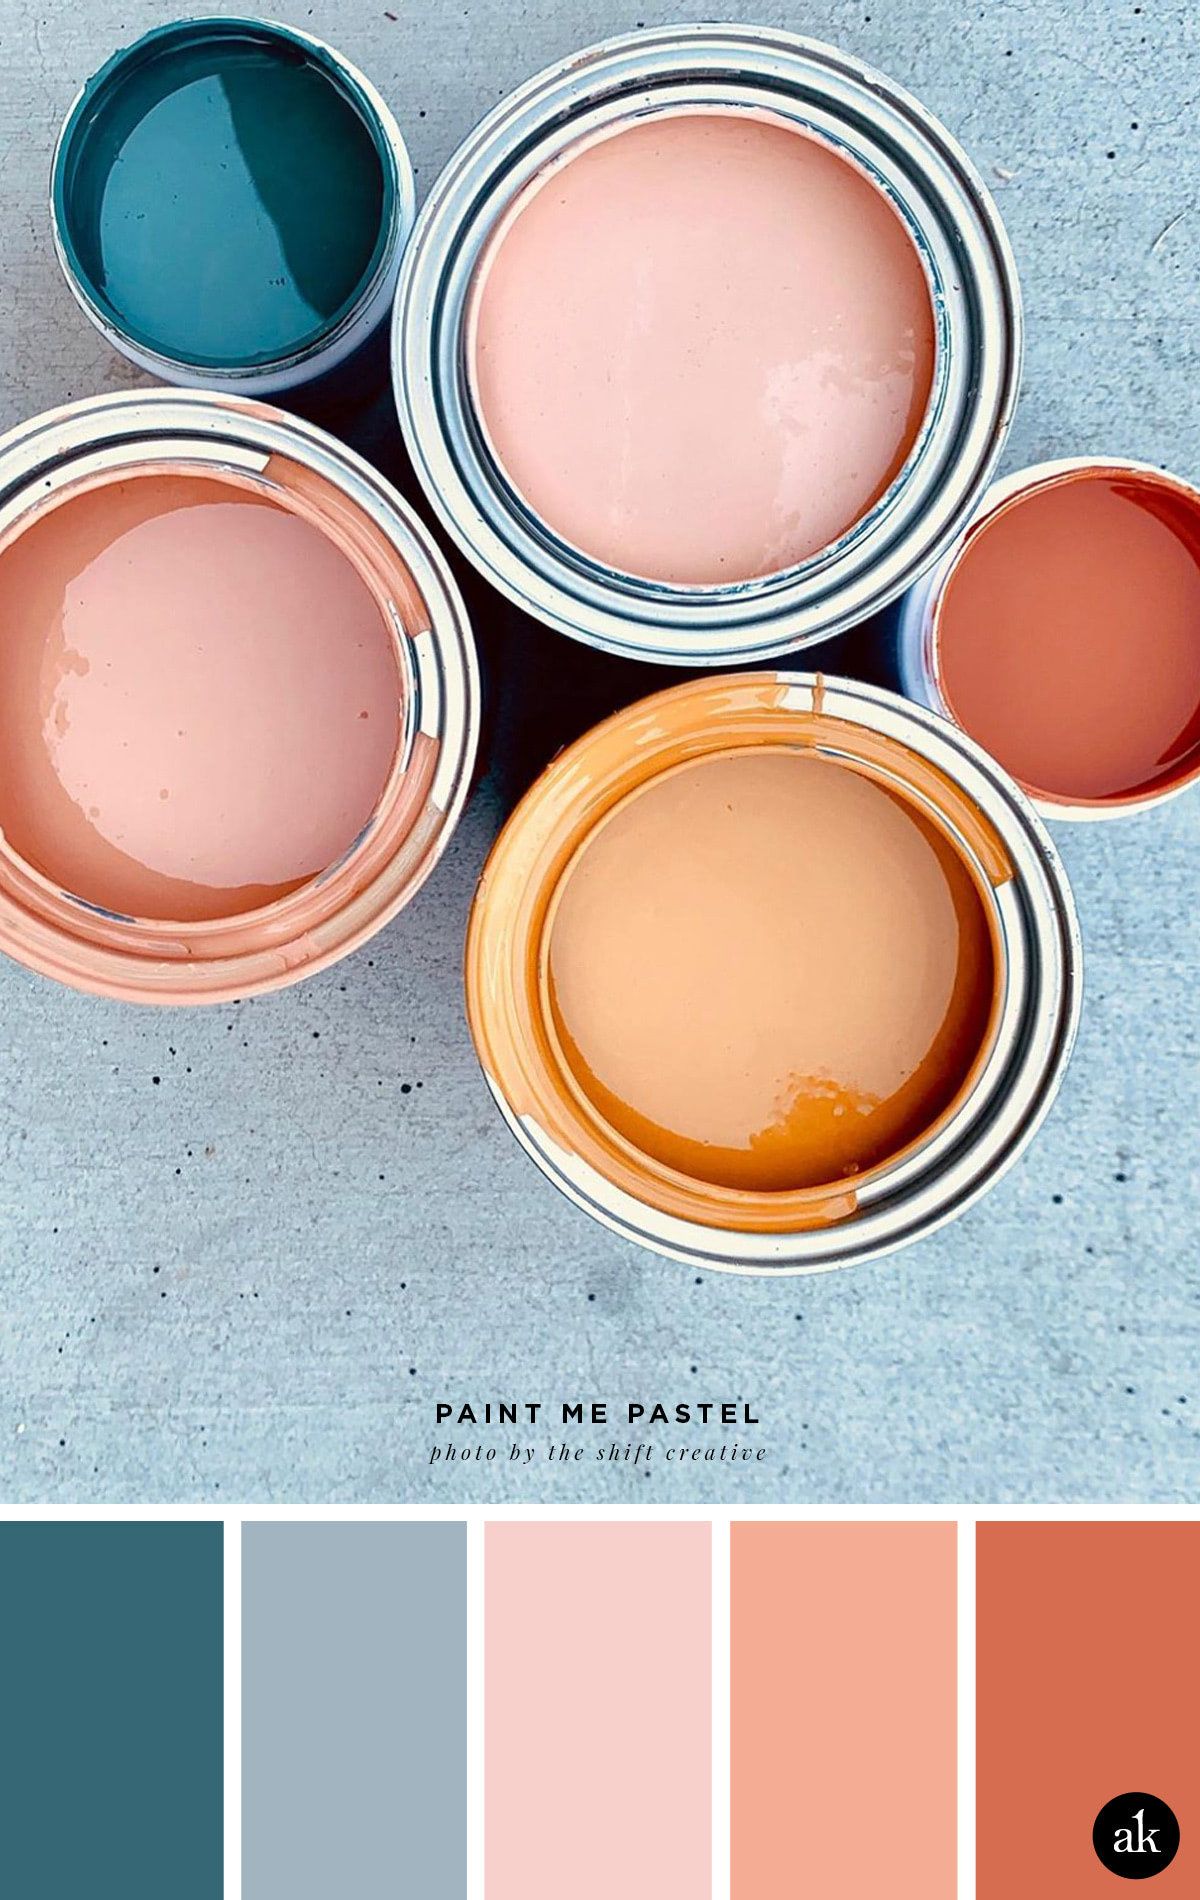 a pastel-paint-inspired color palette // blush, salmon (pink), orange, indigo blue // photo by Shift Creative